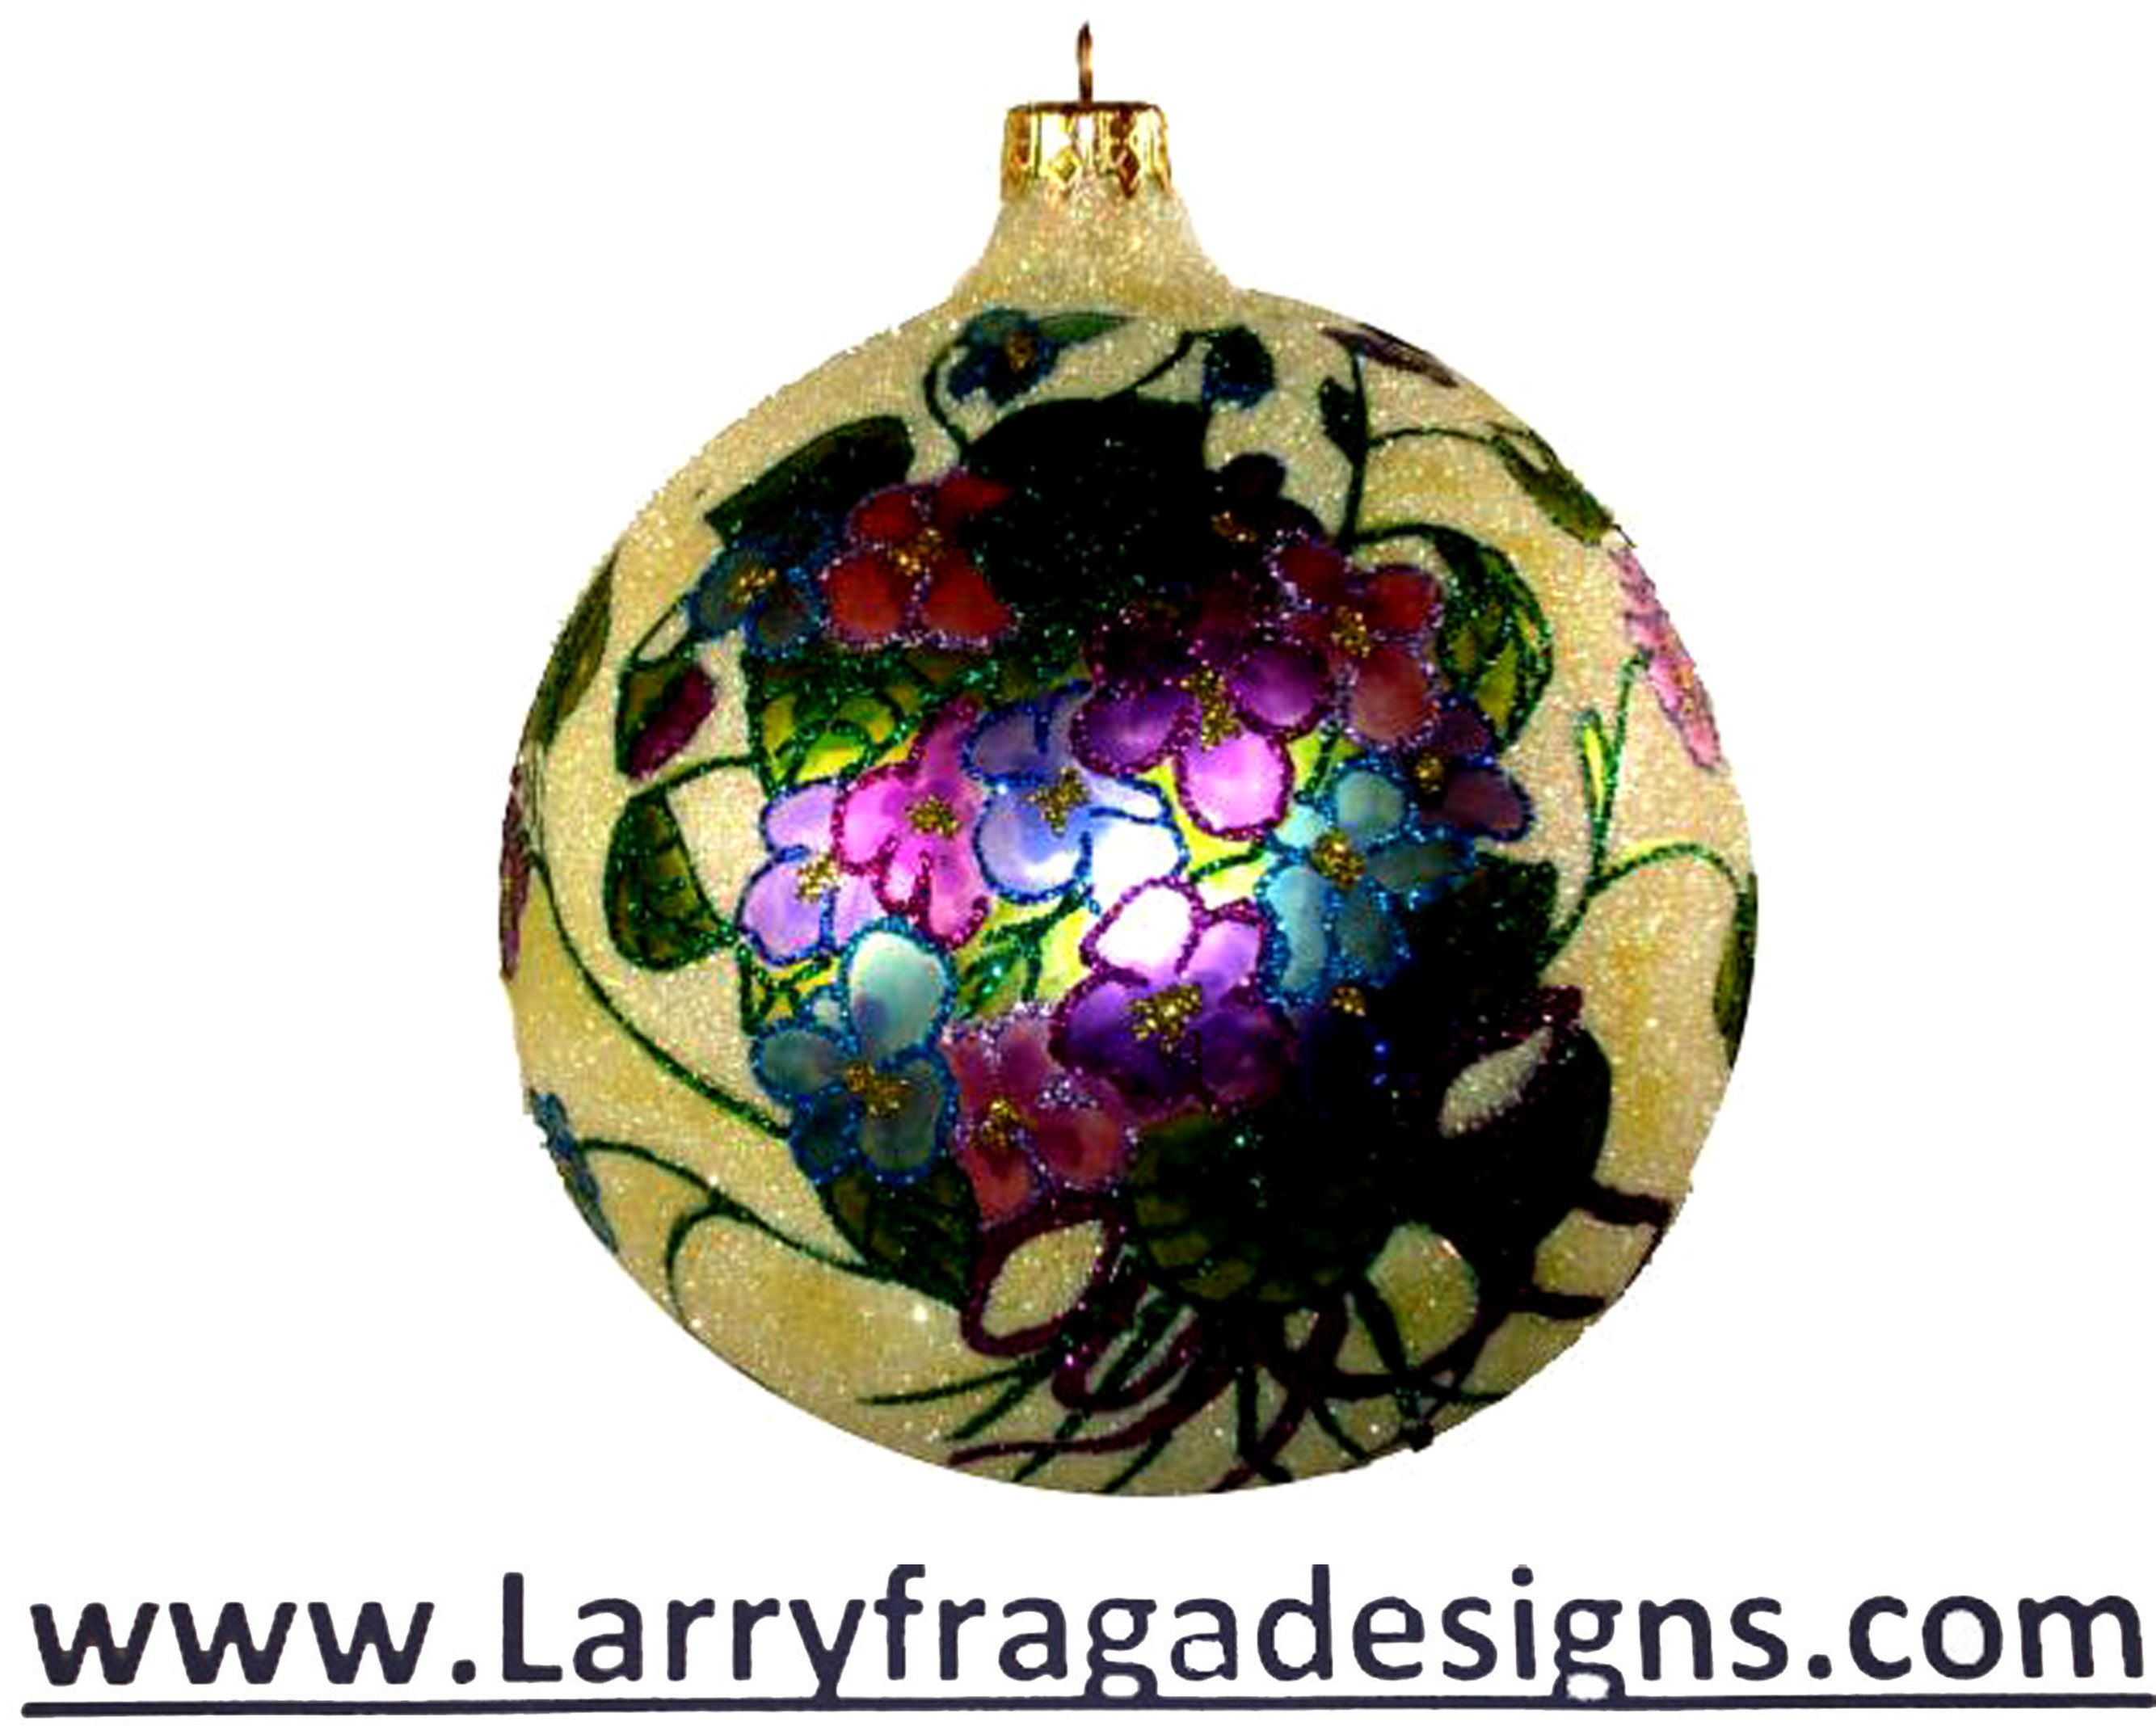 """Carmel in June."" Available from: WWW.larryfragadesigns.com"